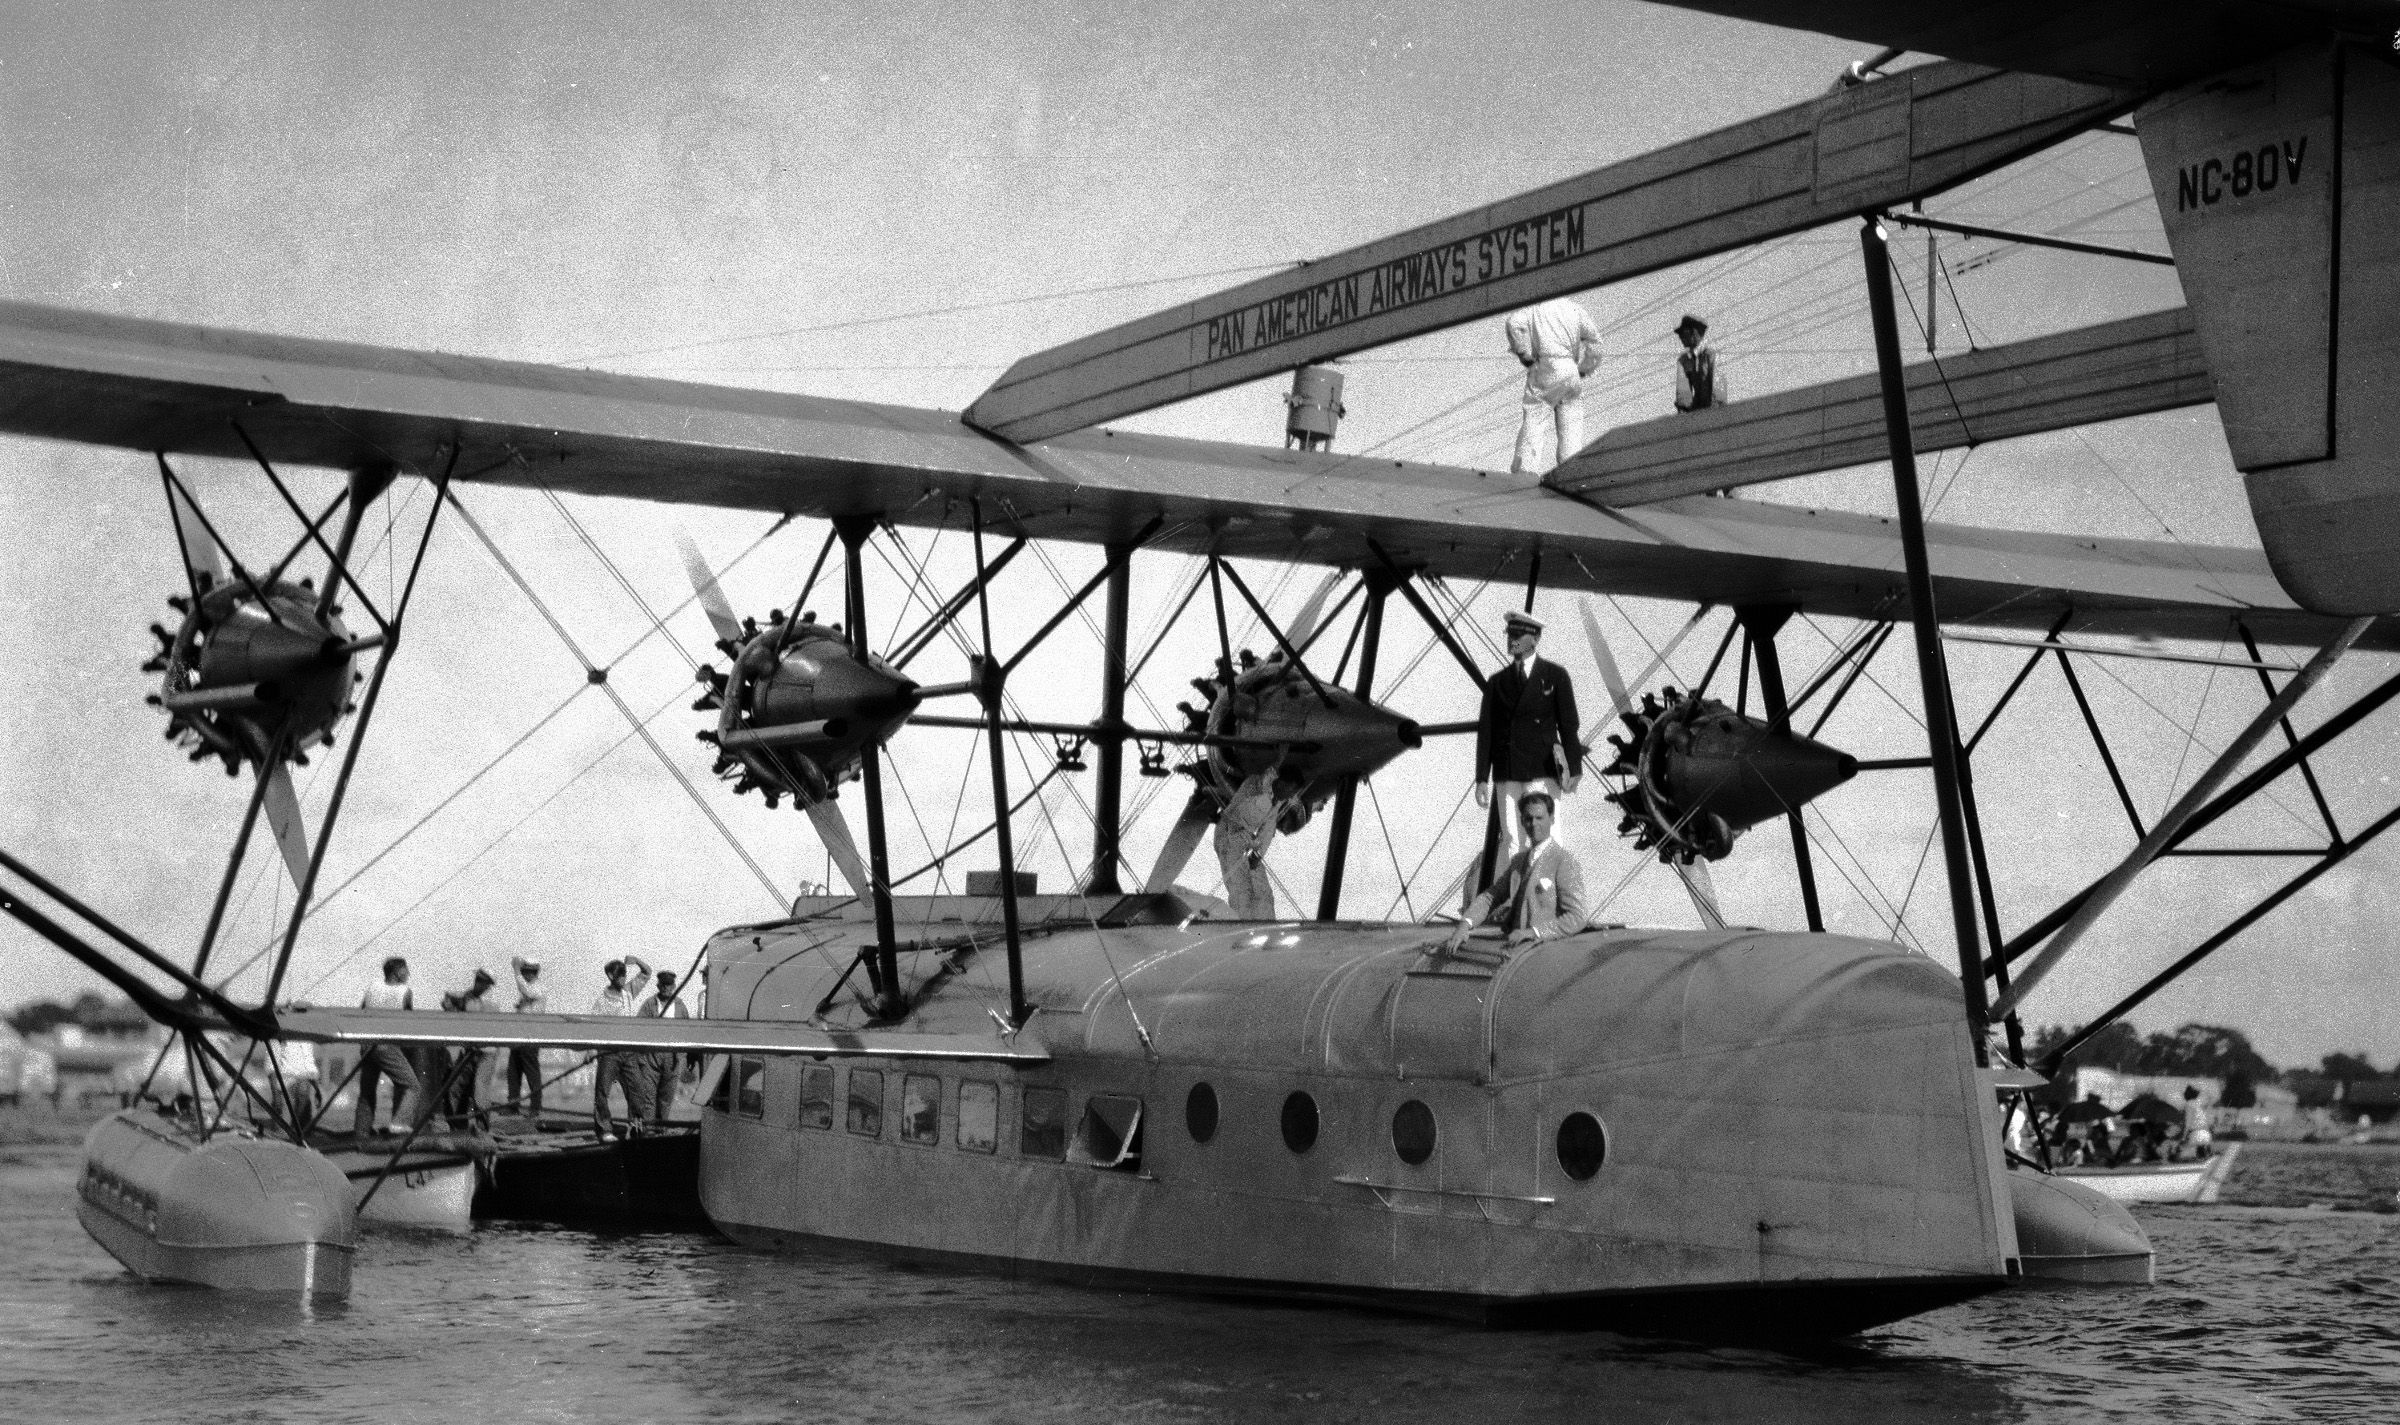 """""""The American Clipper,"""" a four-motored, 45-passenger Sikorsky amphibious plane, is seen as it rests on Cienfuegos Bay, Cuba, Nov. 20, 1931 after its maiden voyage from Miami to Cuba. The Clipper was piloted by Charles Lindbergh."""